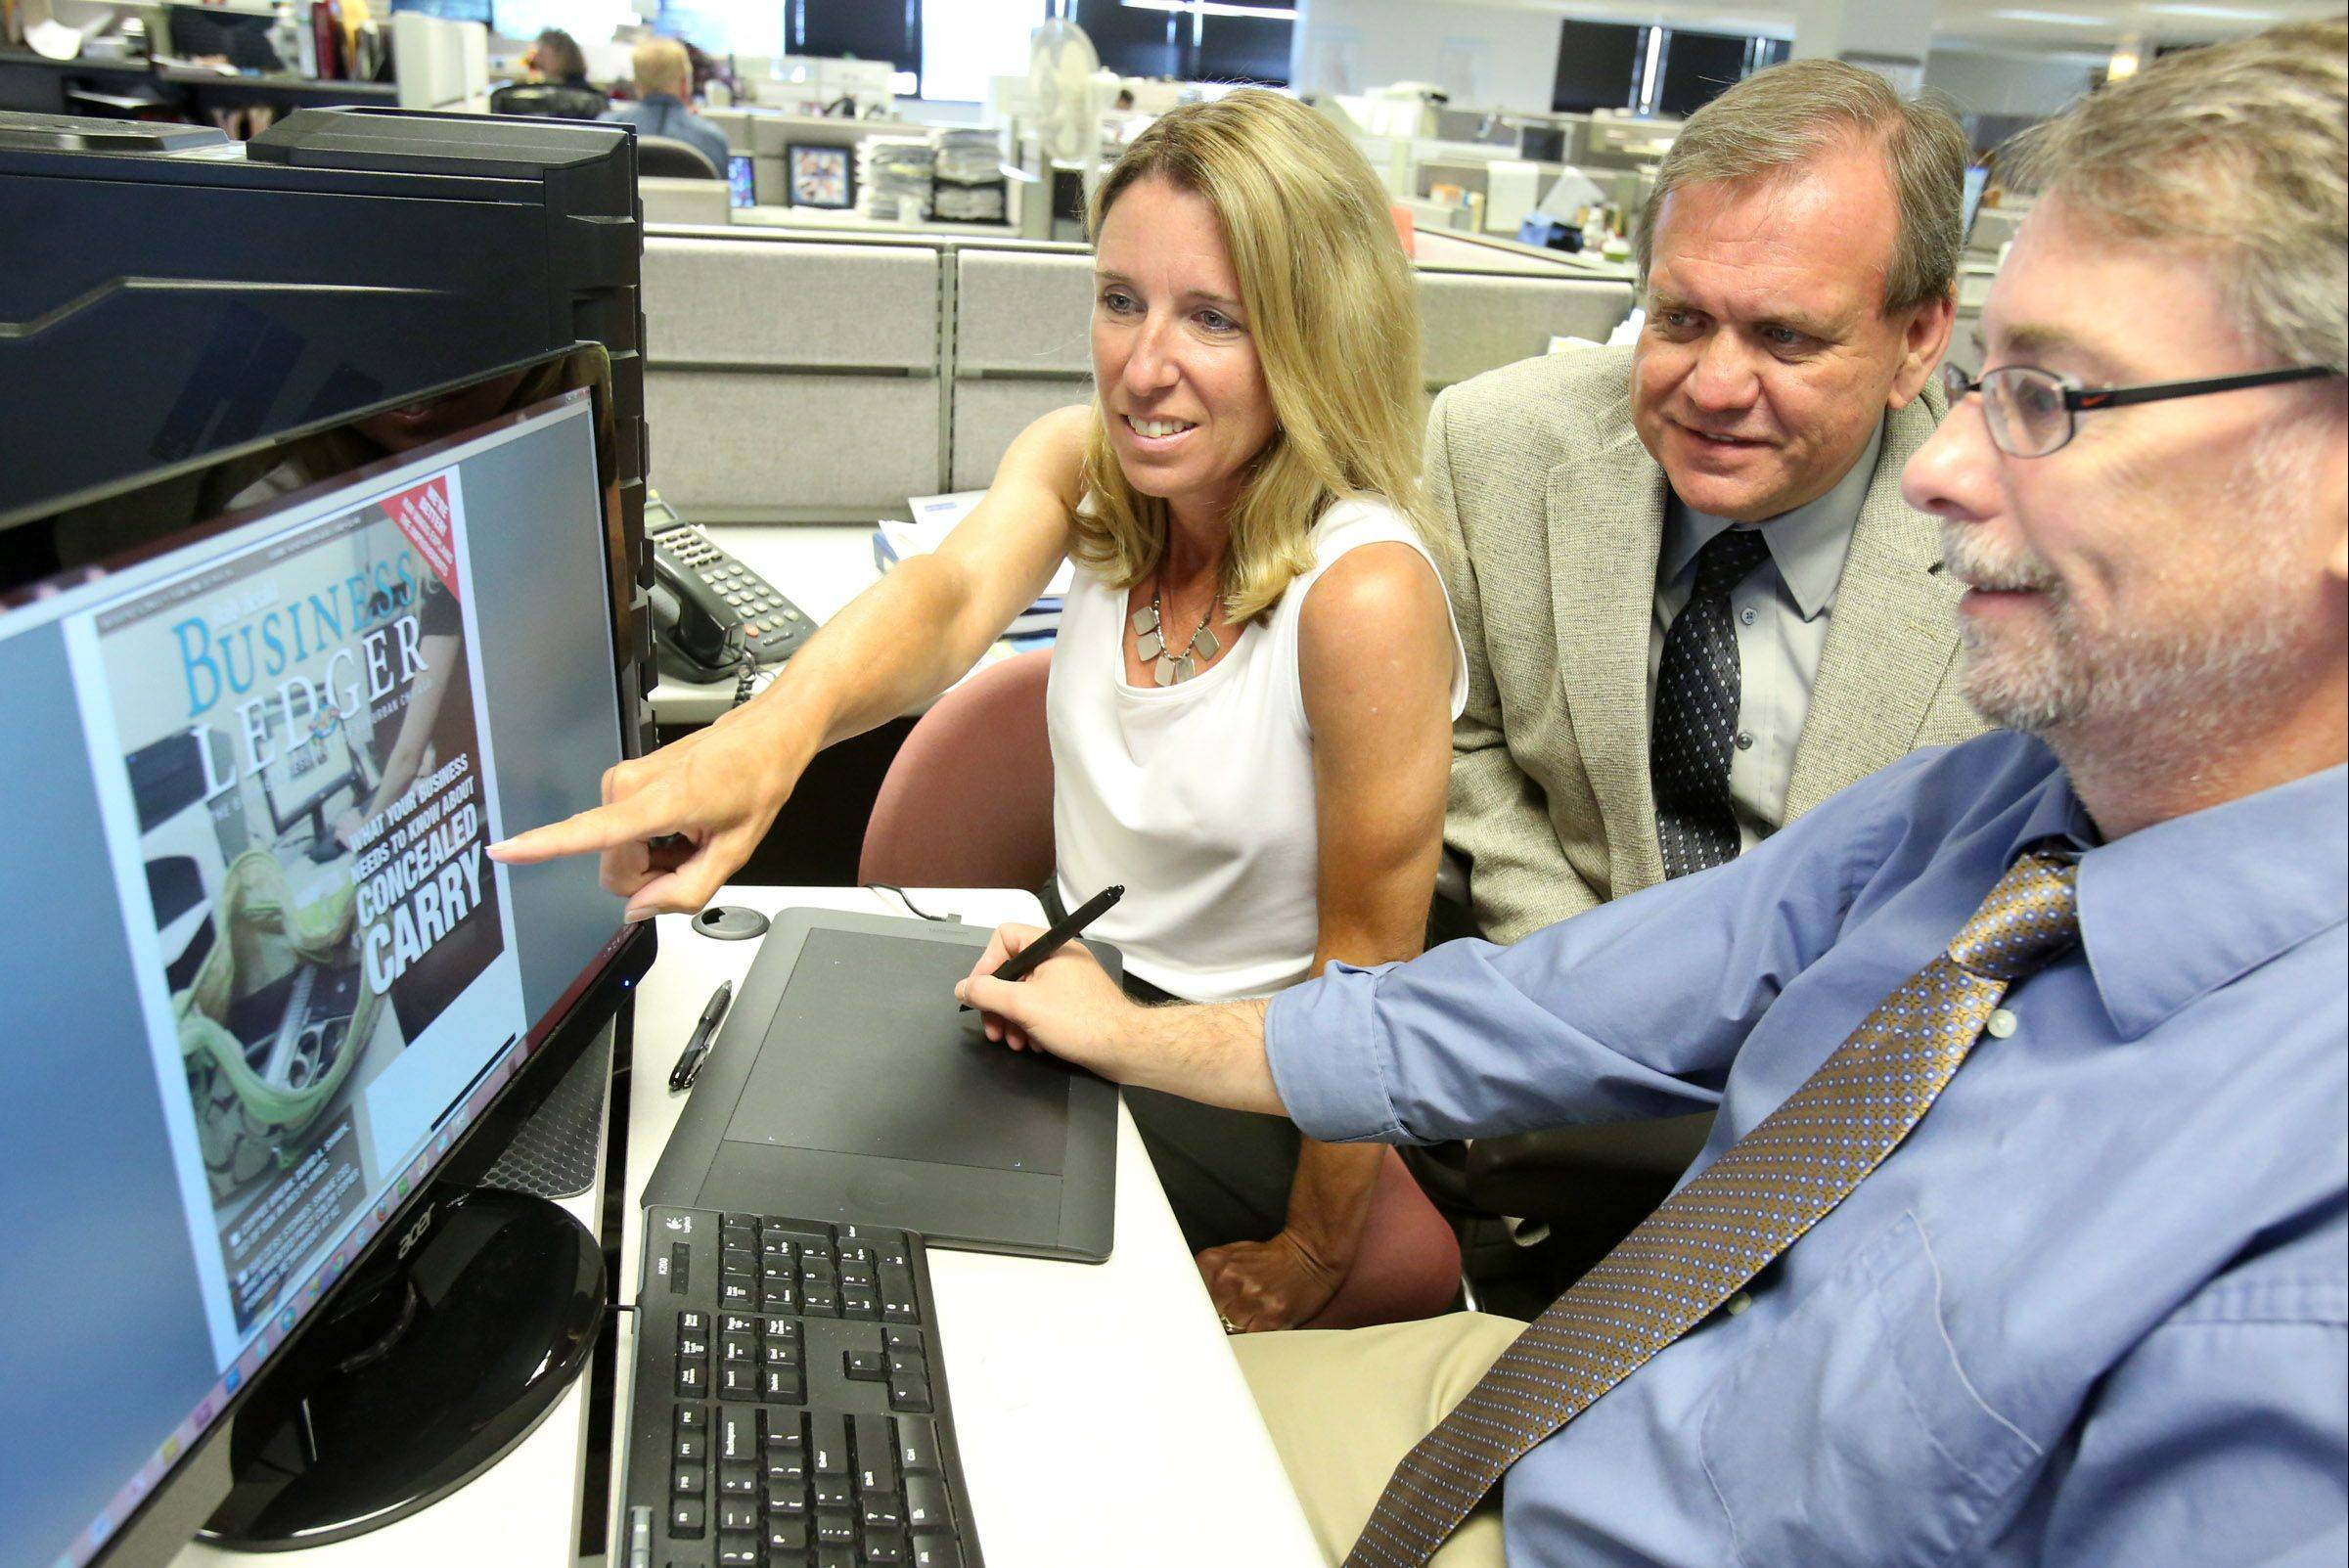 Daily Herald Business Ledger Editor Kim Mikus, left, Director of Content Development Richard R. Klicki and News Presentation Editor Tim Broderick work on a recent edition of the Business Ledger.